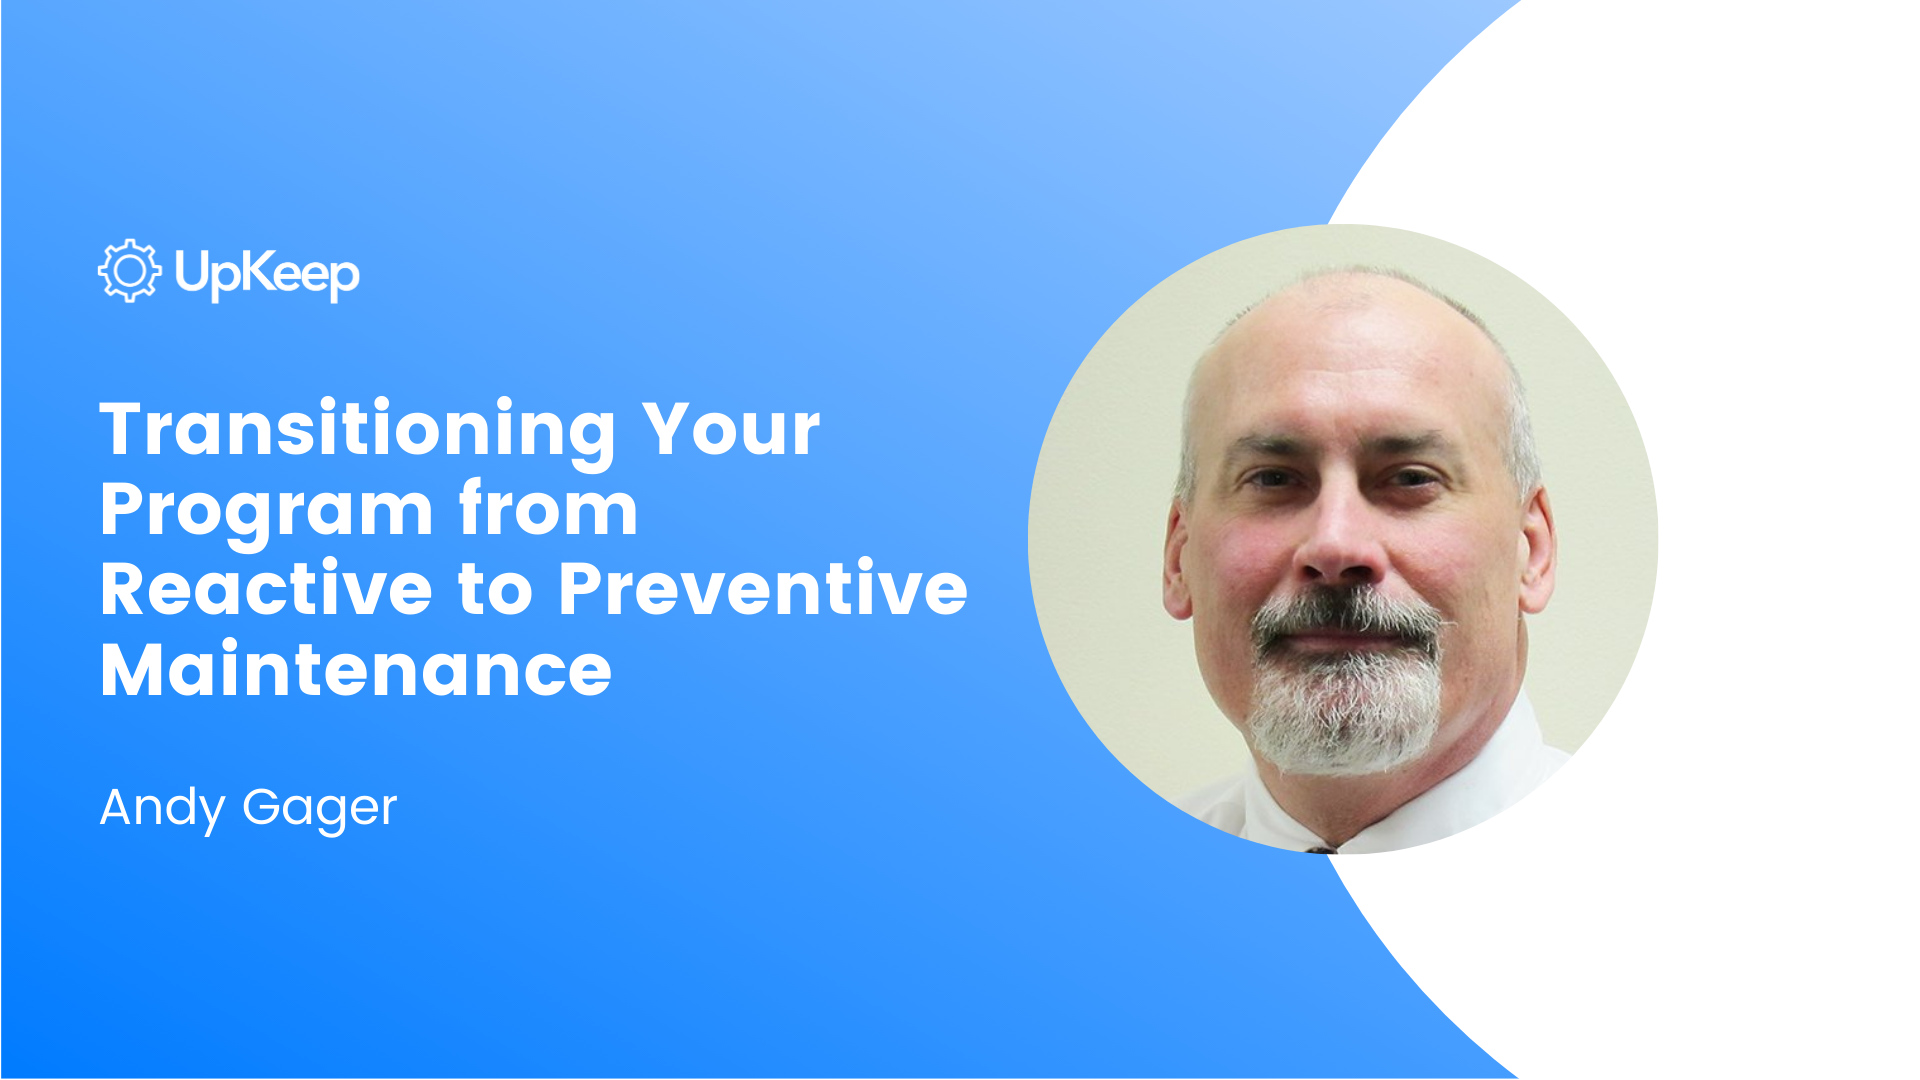 Transitioning Your Program from Reactive to Preventive Maintenance